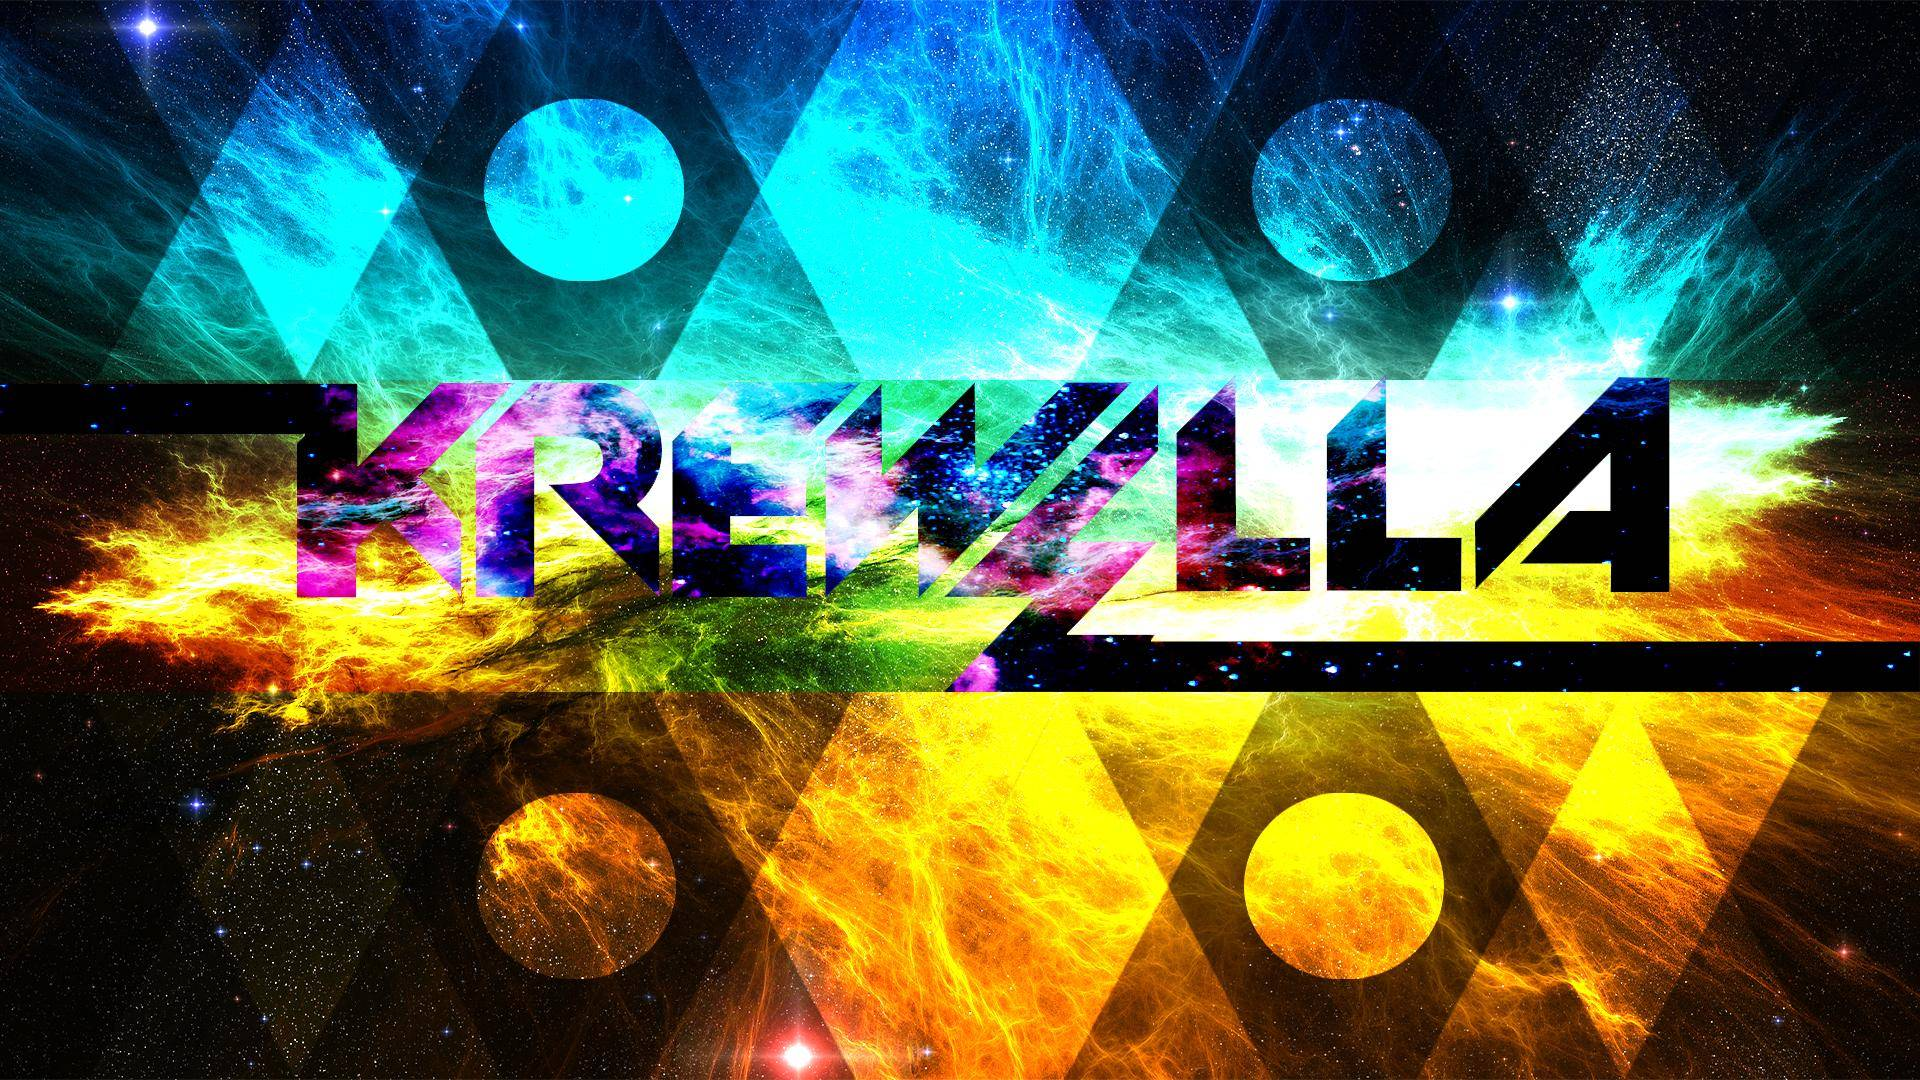 Krewella logo clipart graphic freeuse download Krewella Logo Wallpapers - Wallpaper Cave graphic freeuse download